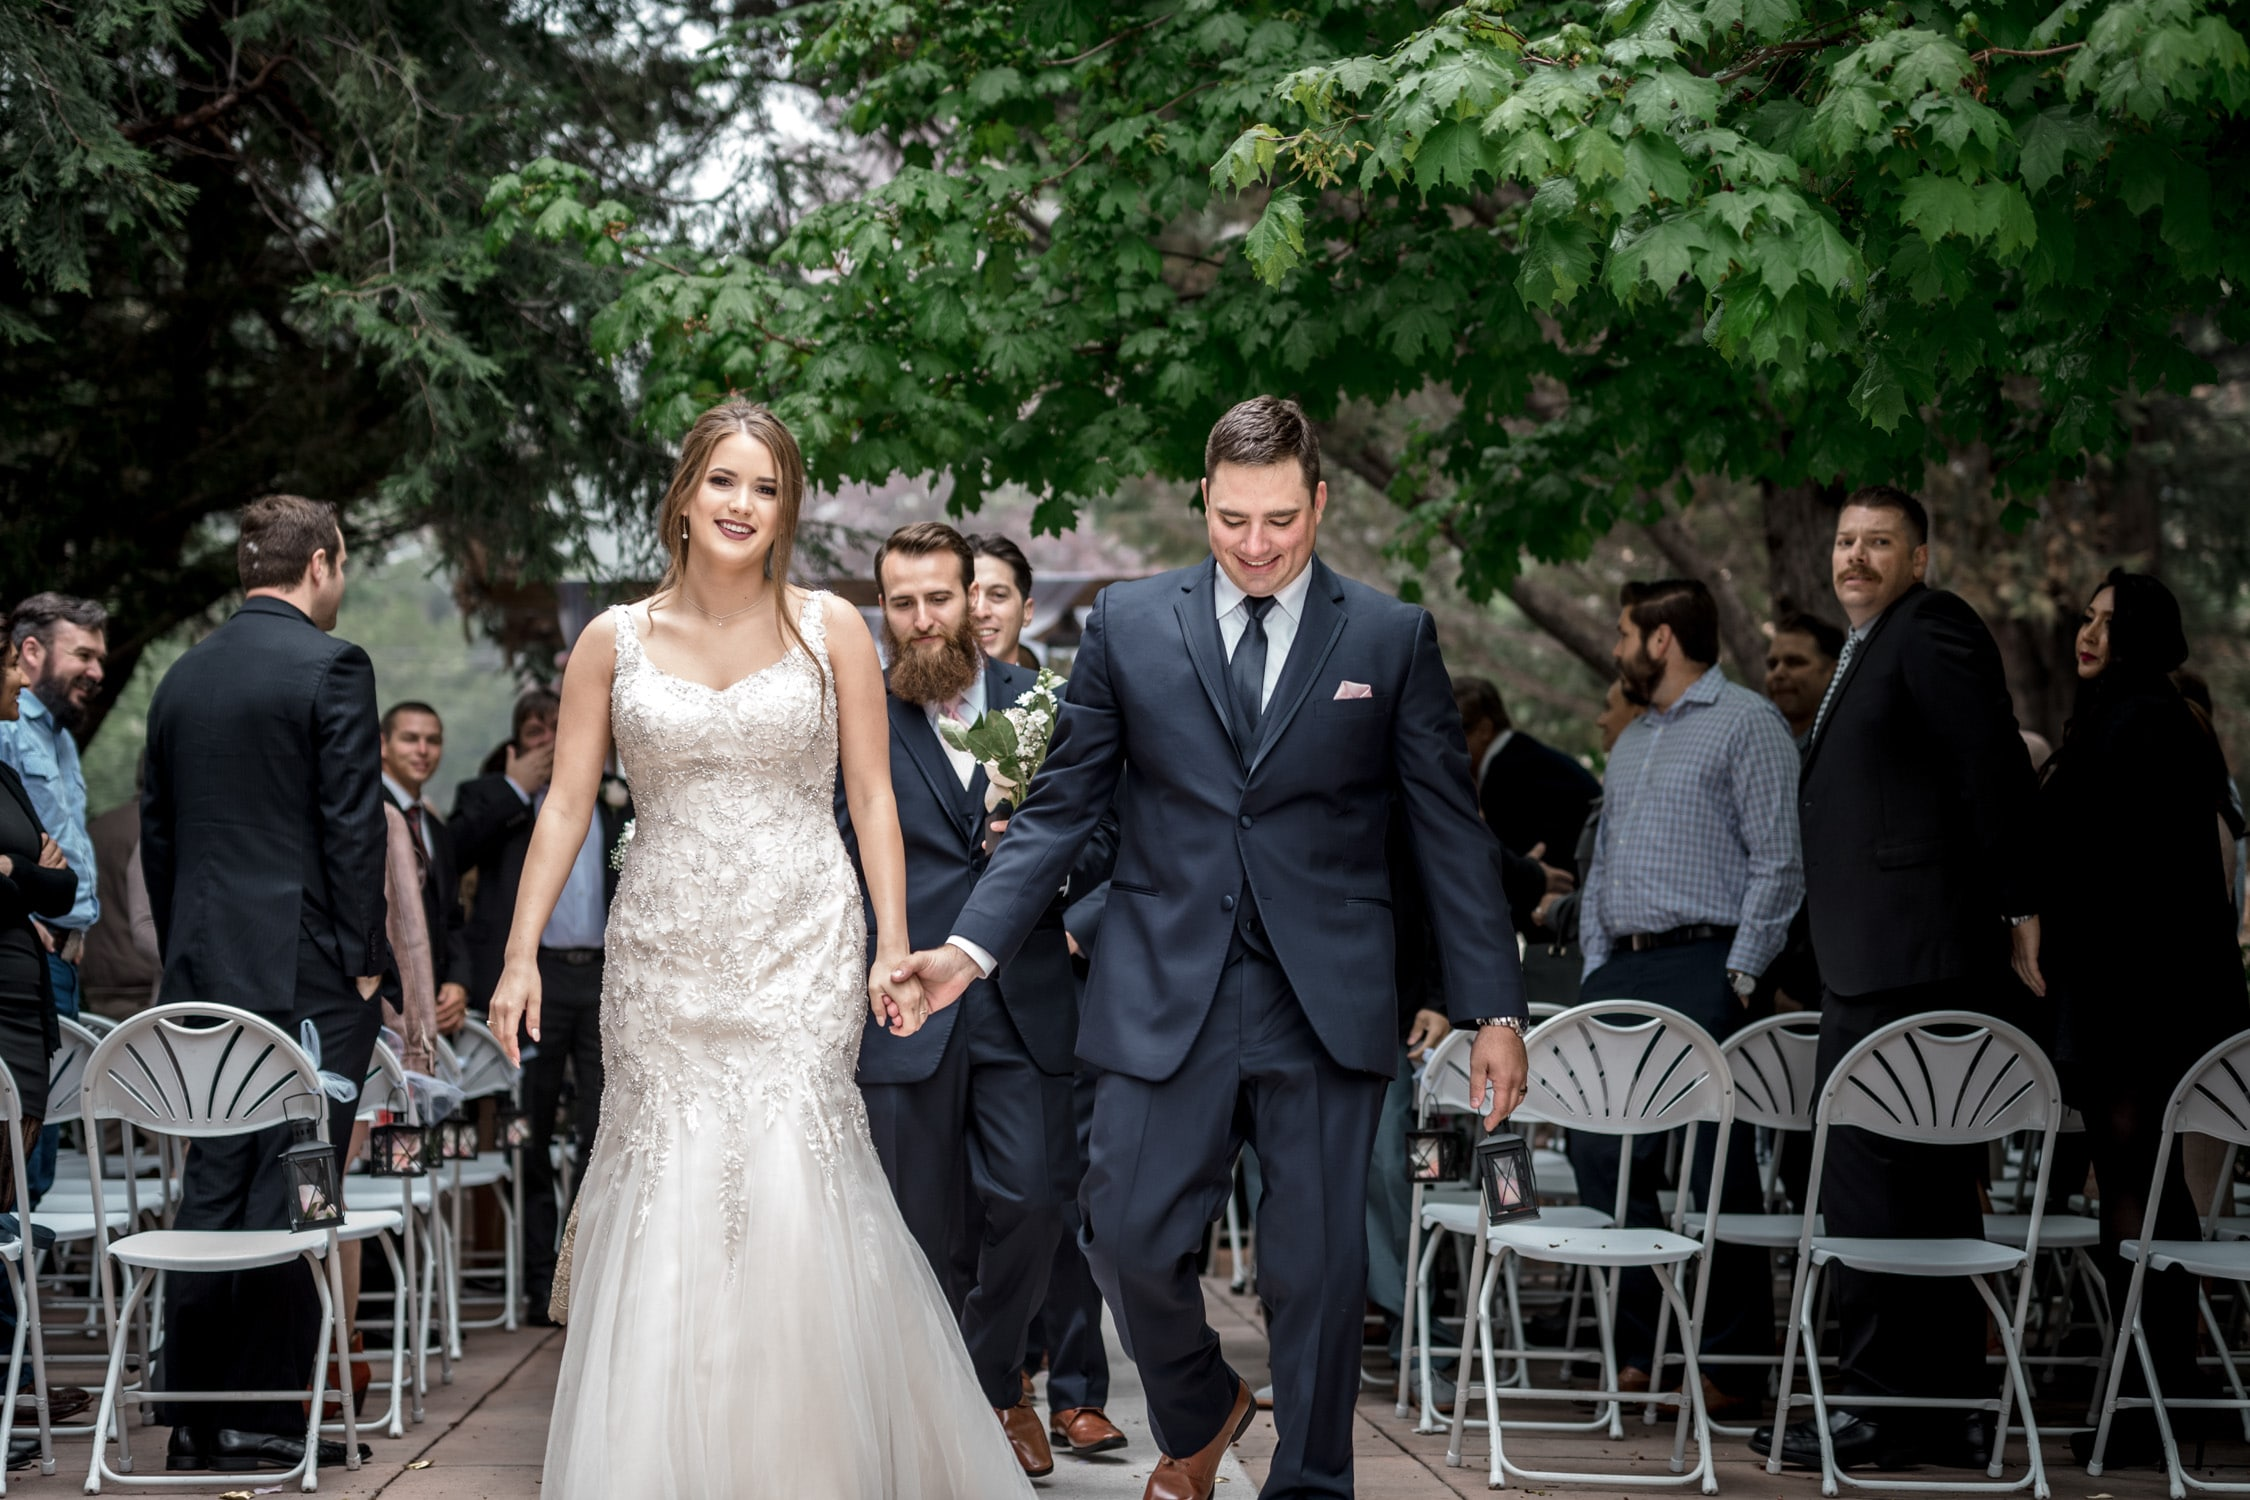 Audrey + Thomas Lake Arrowhead Wedding 31